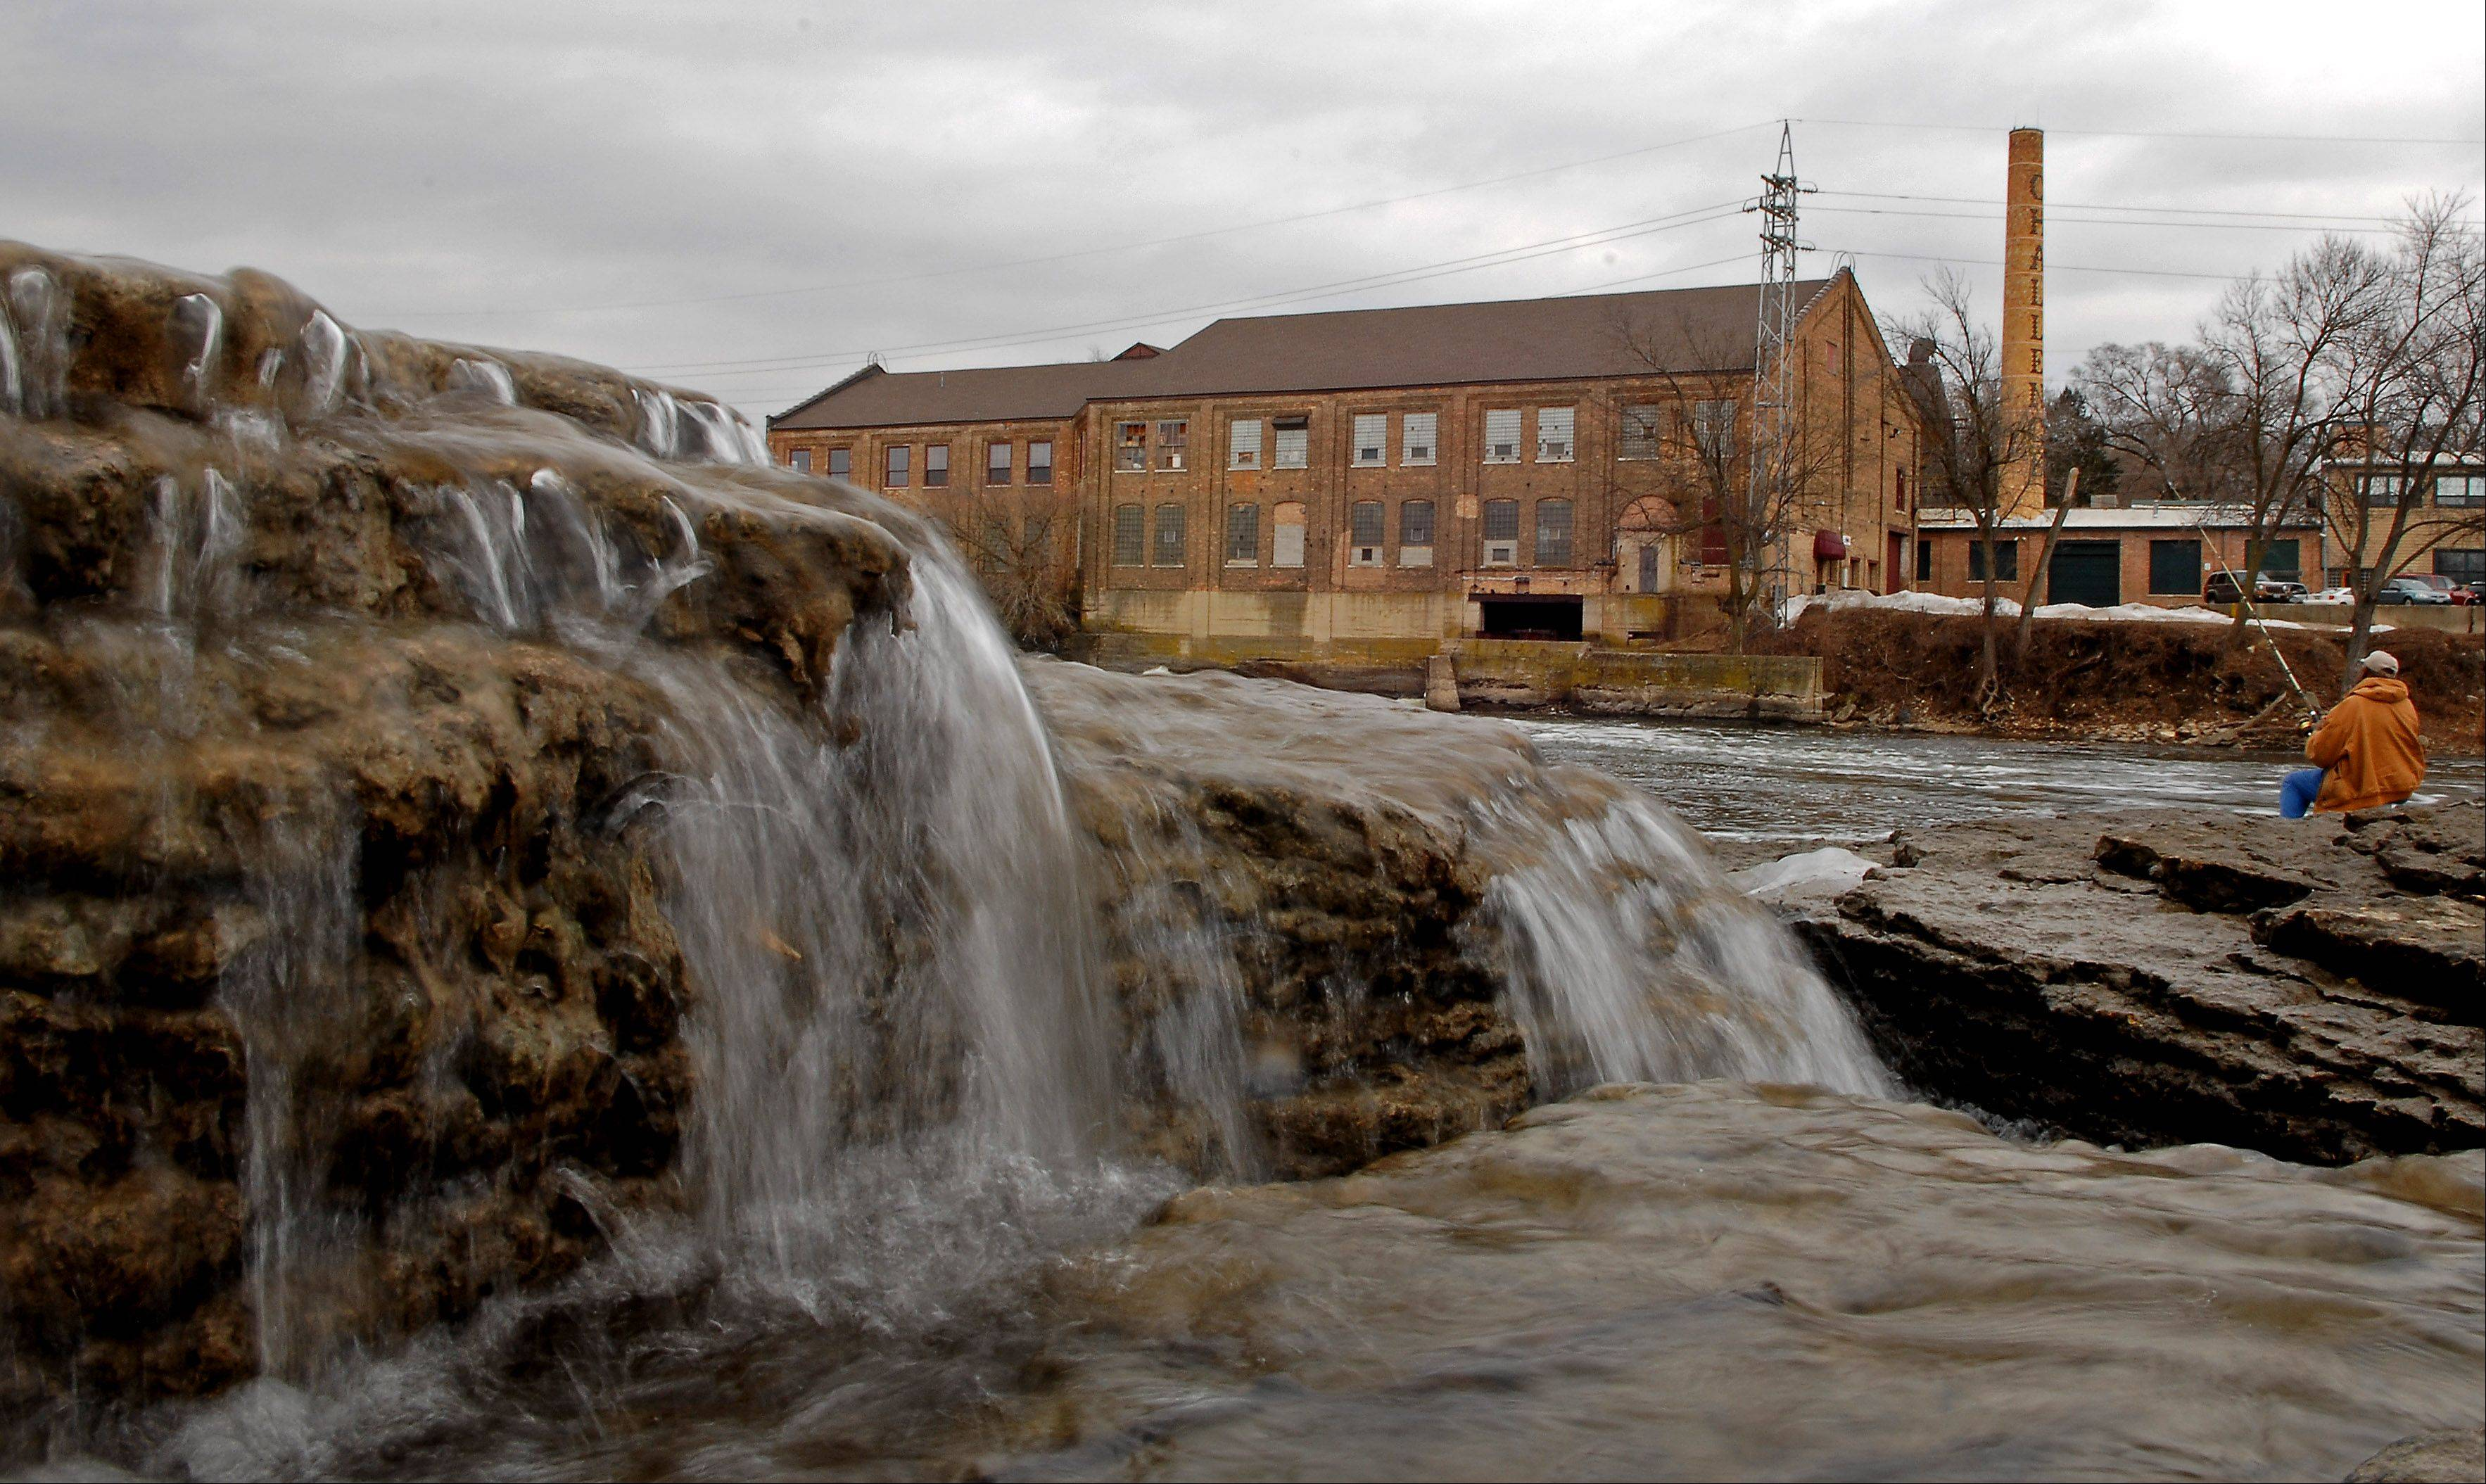 Water flows freely with no ice near the dam on the Fox River in Batavia during an unusually warm winter. To the east is the former Challenge Wind Mill and Feed Co. complex, a remnant of the town's former focus on the river as a supplier of power.